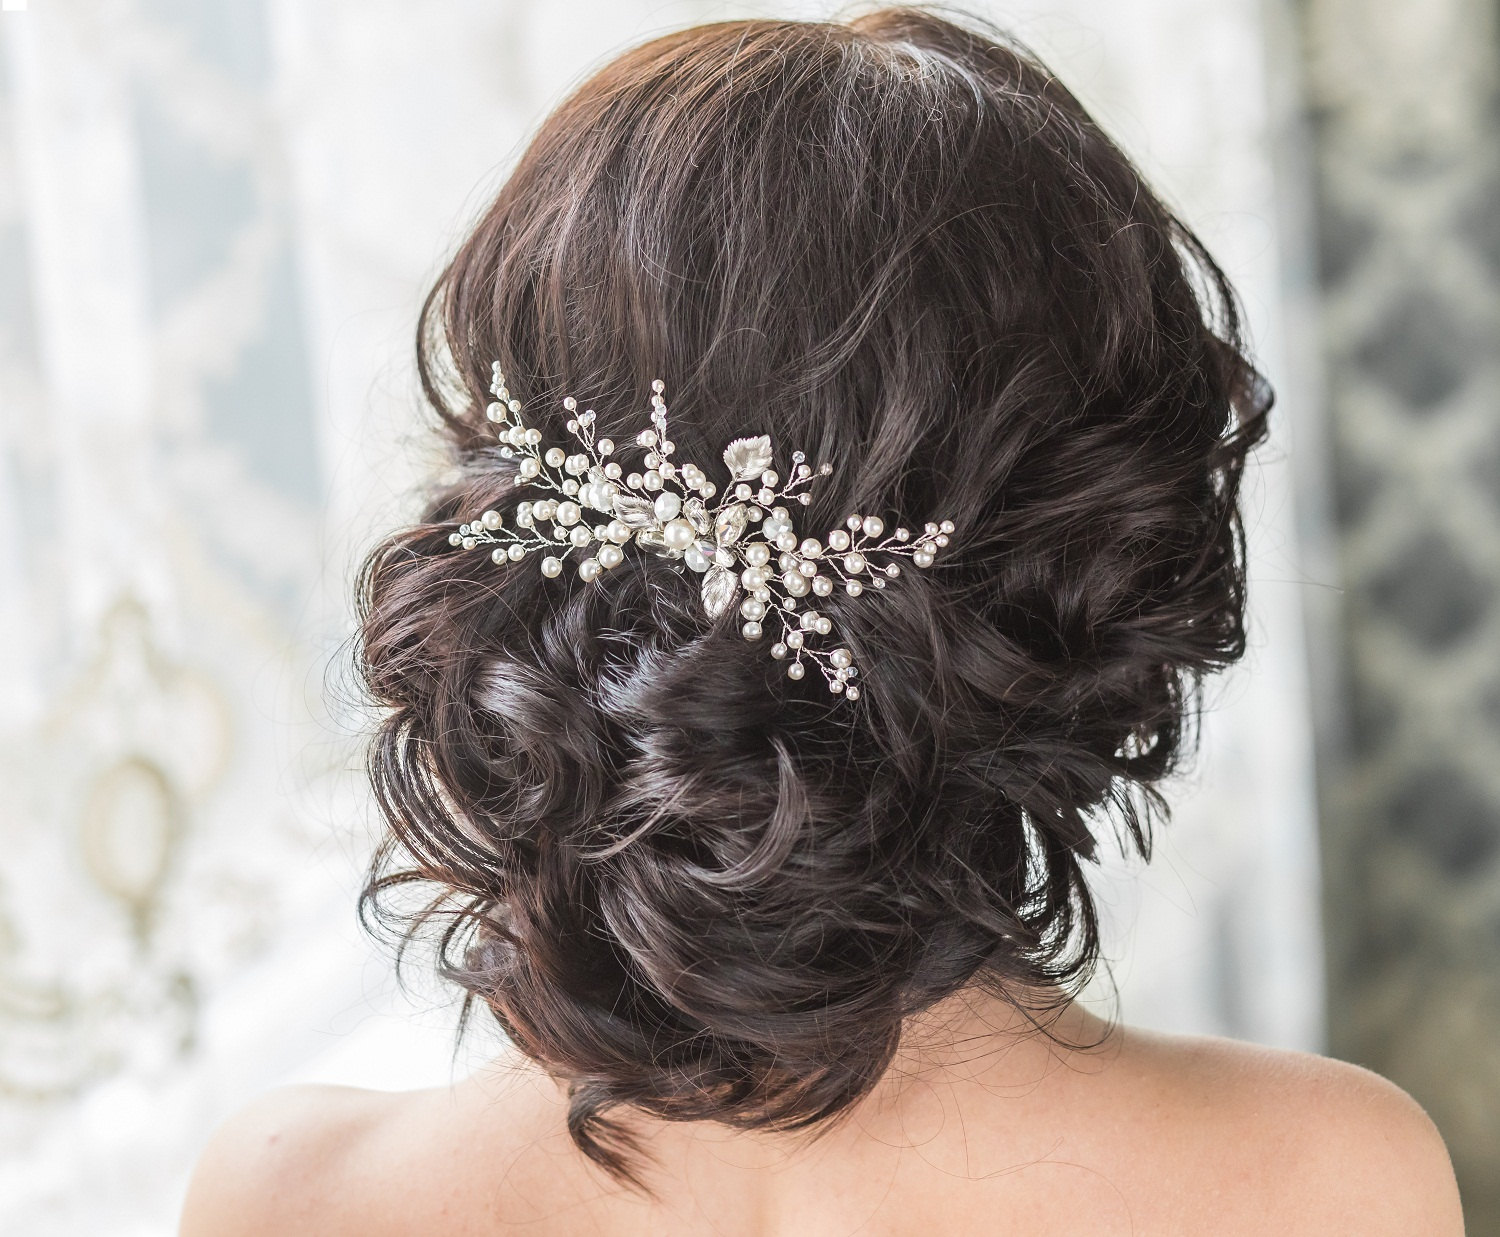 7 Best Ideas Of Wedding Hair Accessories For A Bride